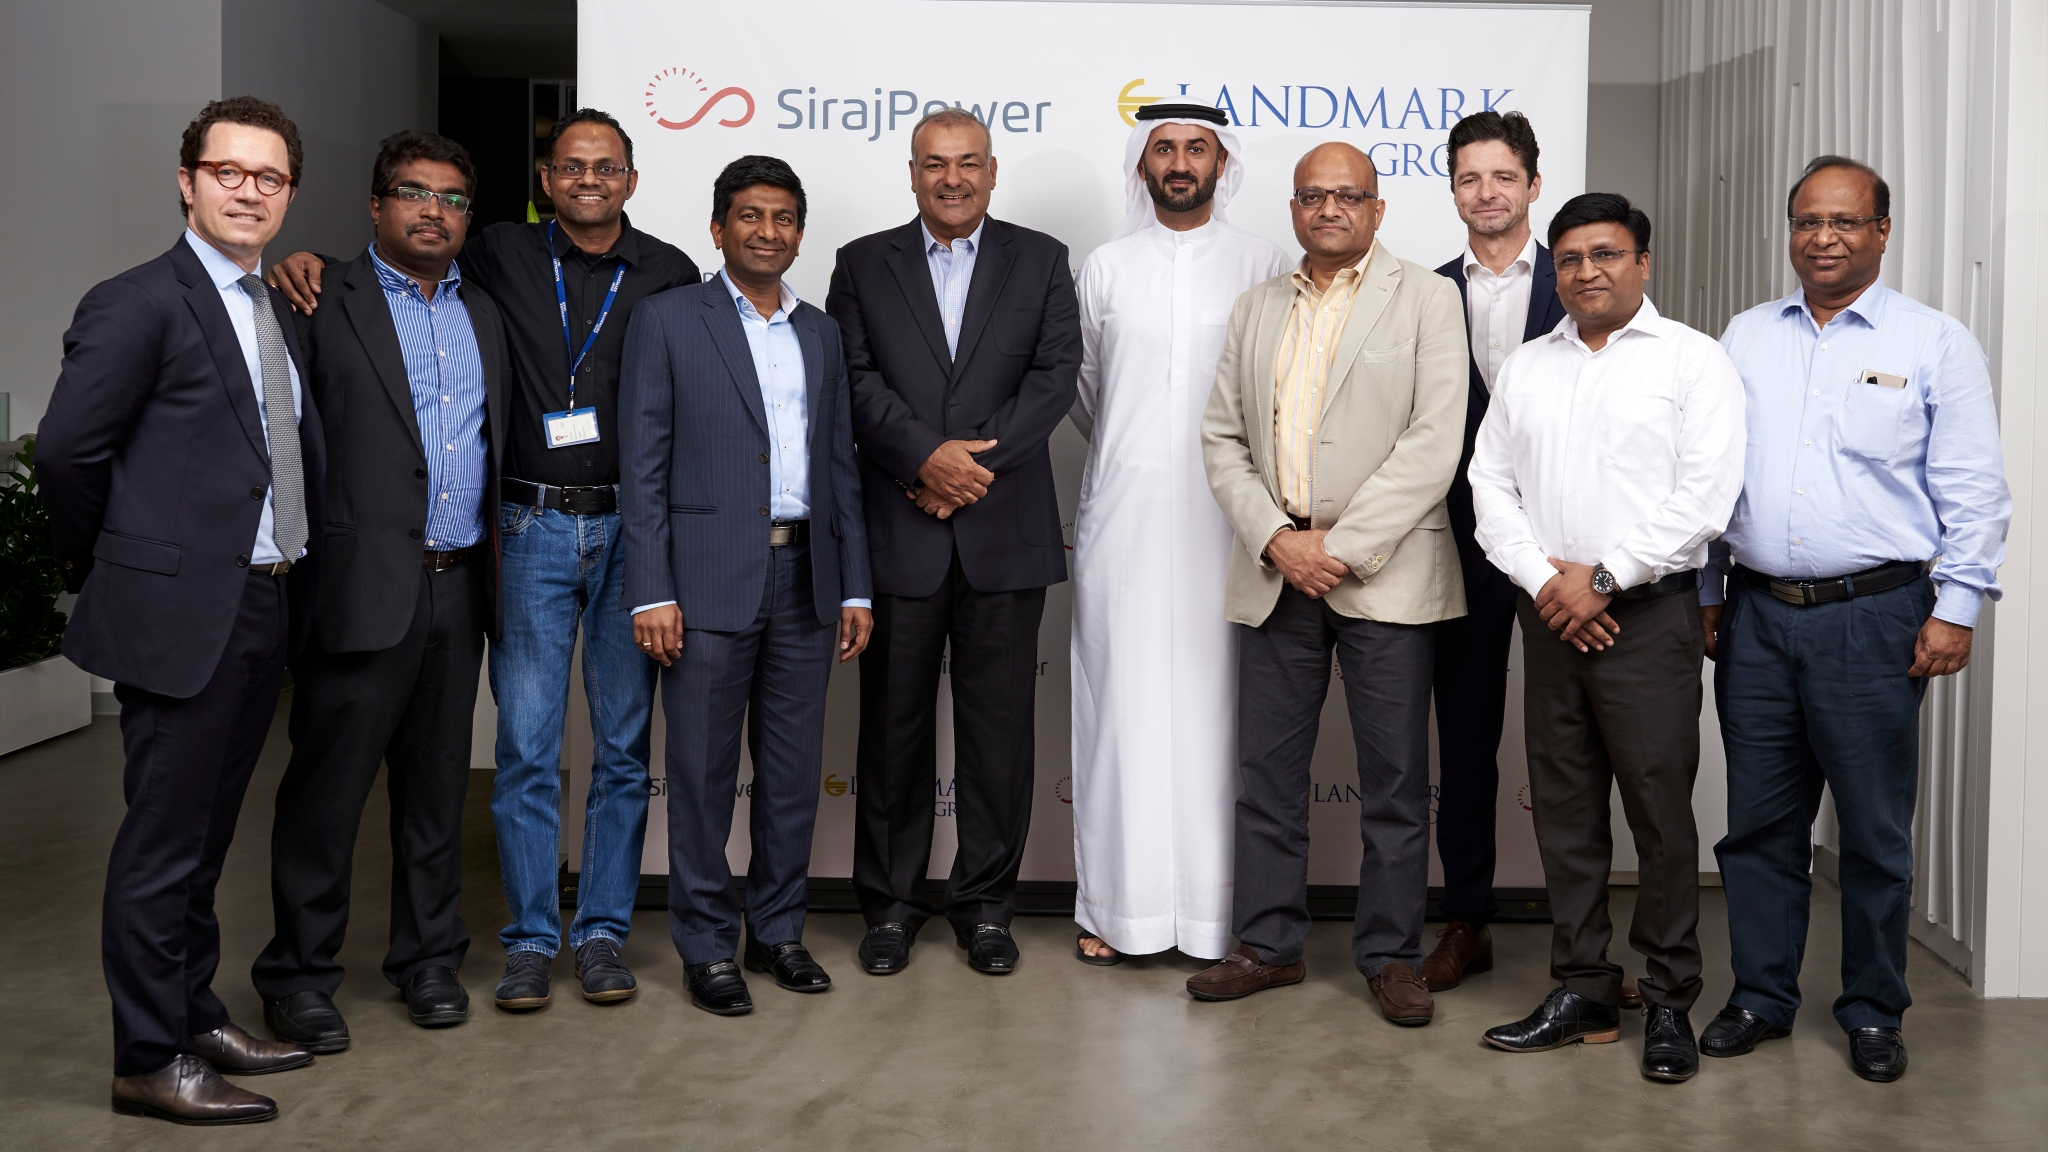 SirajPower to implement solar rooftop at Landmark Group facility